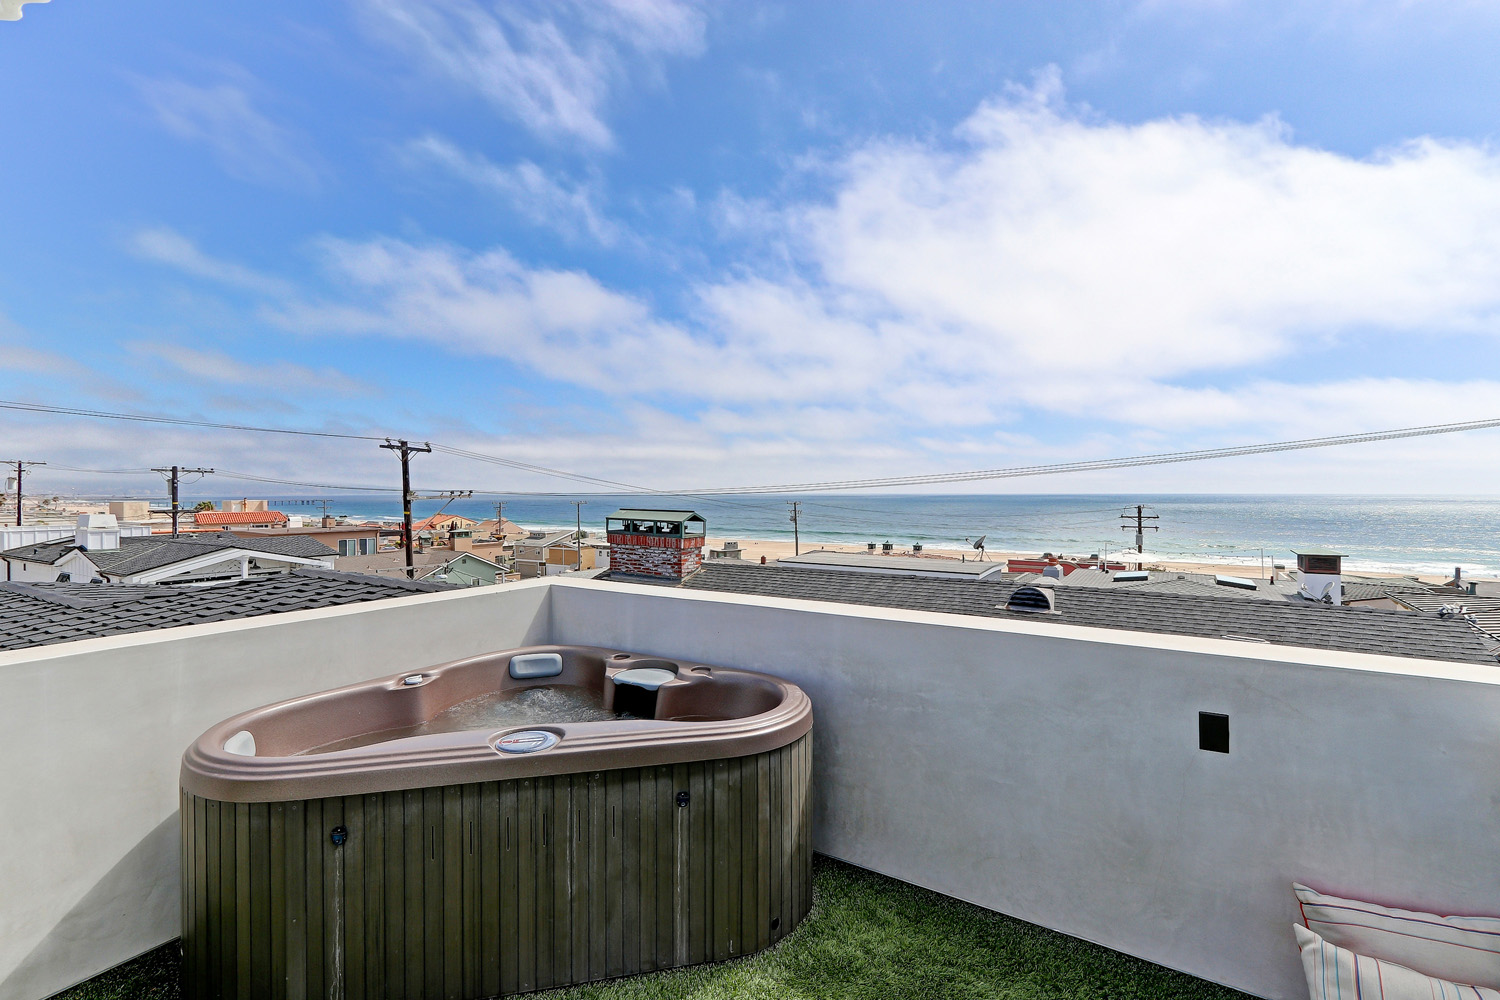 Additional photo for property listing at Modern in Hermosa 123 28th St, Hermosa Beach, CA 90254 Hermosa Beach, California,90254 United States